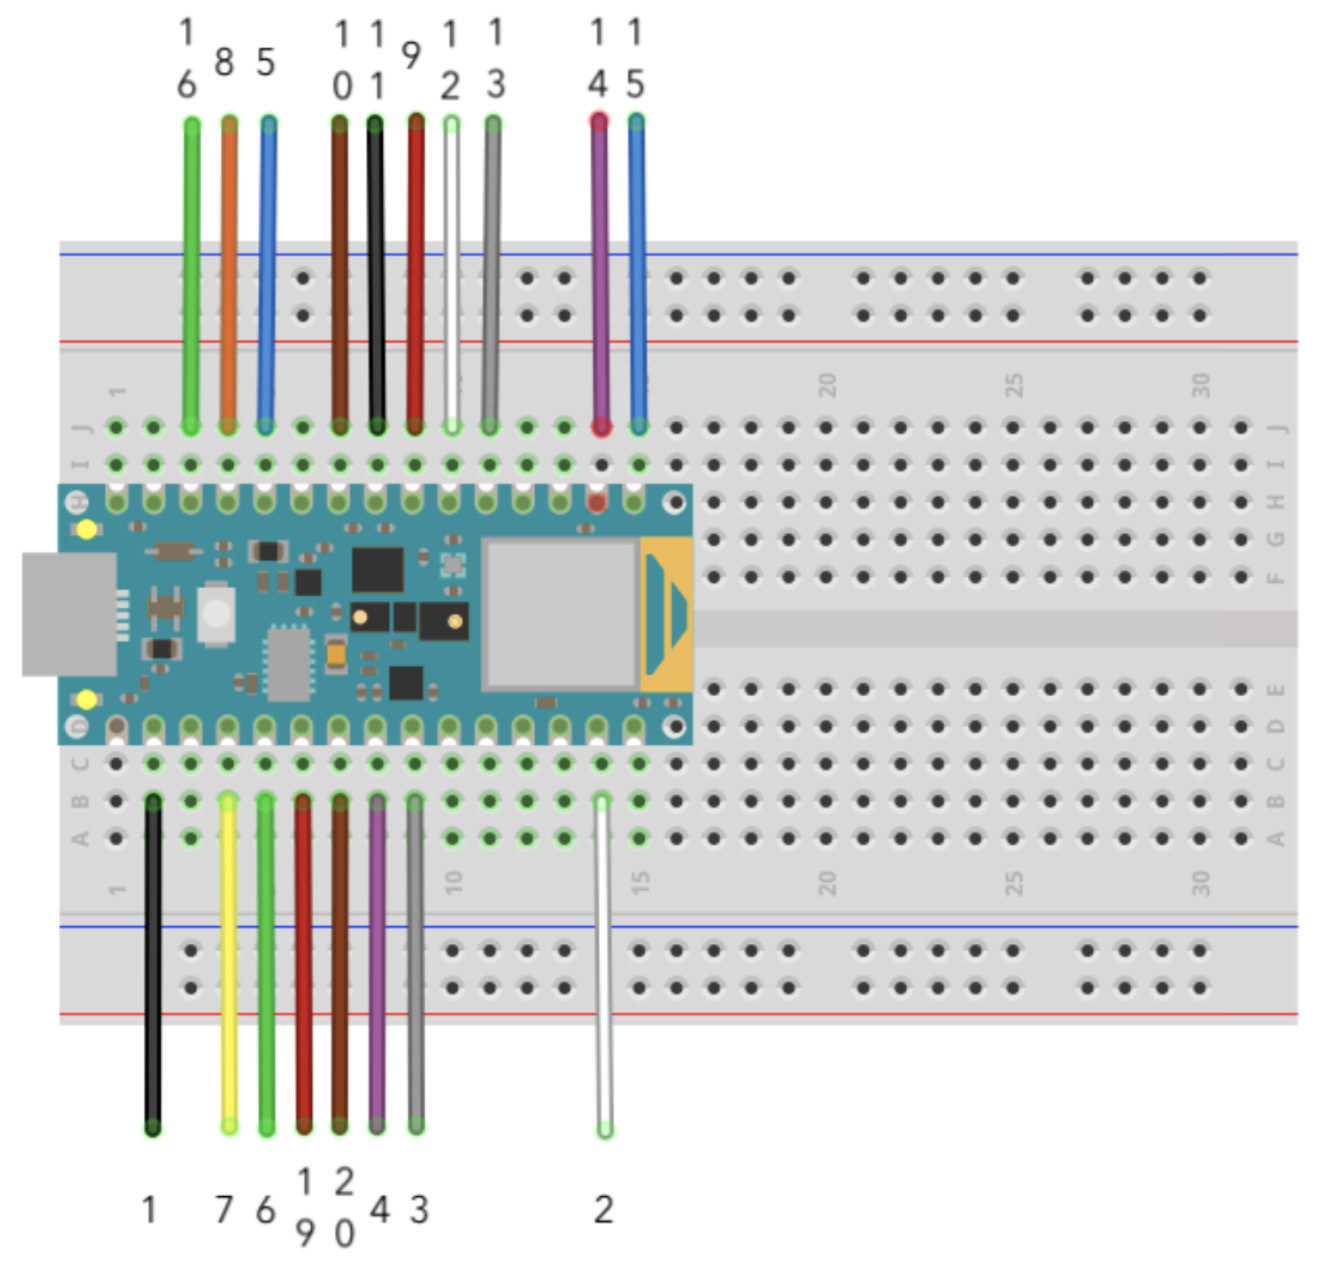 Wiring diagram showing the OV7675 connections to Arduino Nano 33 BLE Sense.